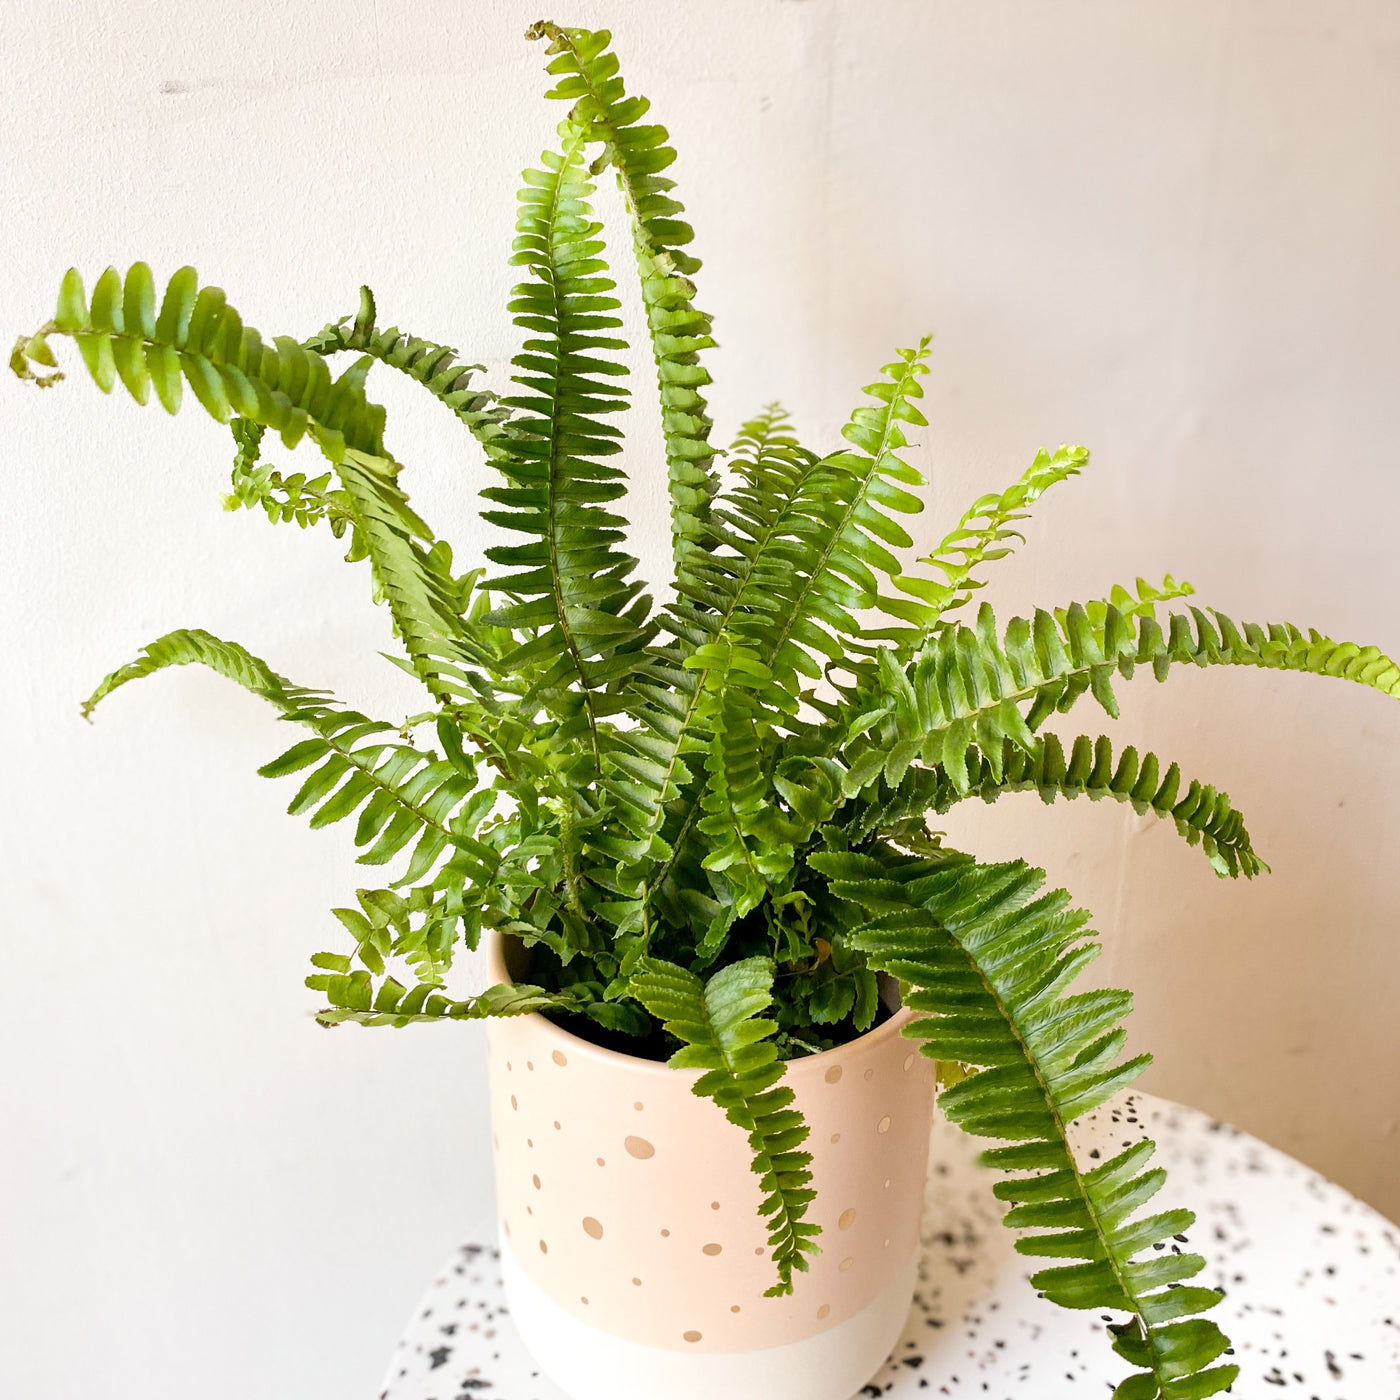 Jester Crown Fern